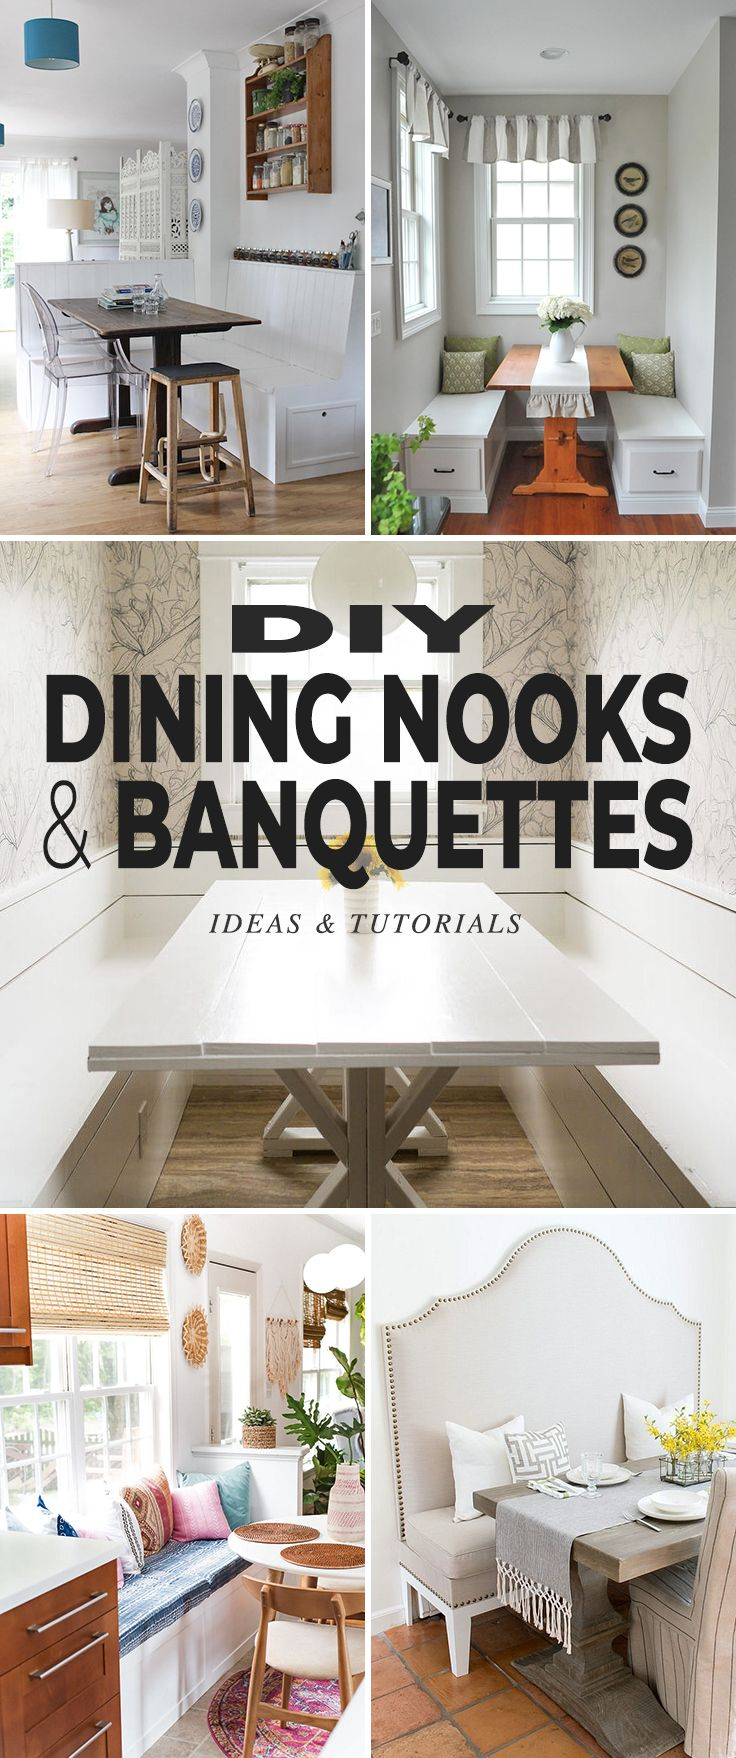 DIY Dining Nooks and Banquettes! • Lots of great ideas, projects and tutorials on how to build your own! #DIYdiningnooks #DIYbanquettes #DIY #DIYnooks #diningnook #DIYkitchenprojects